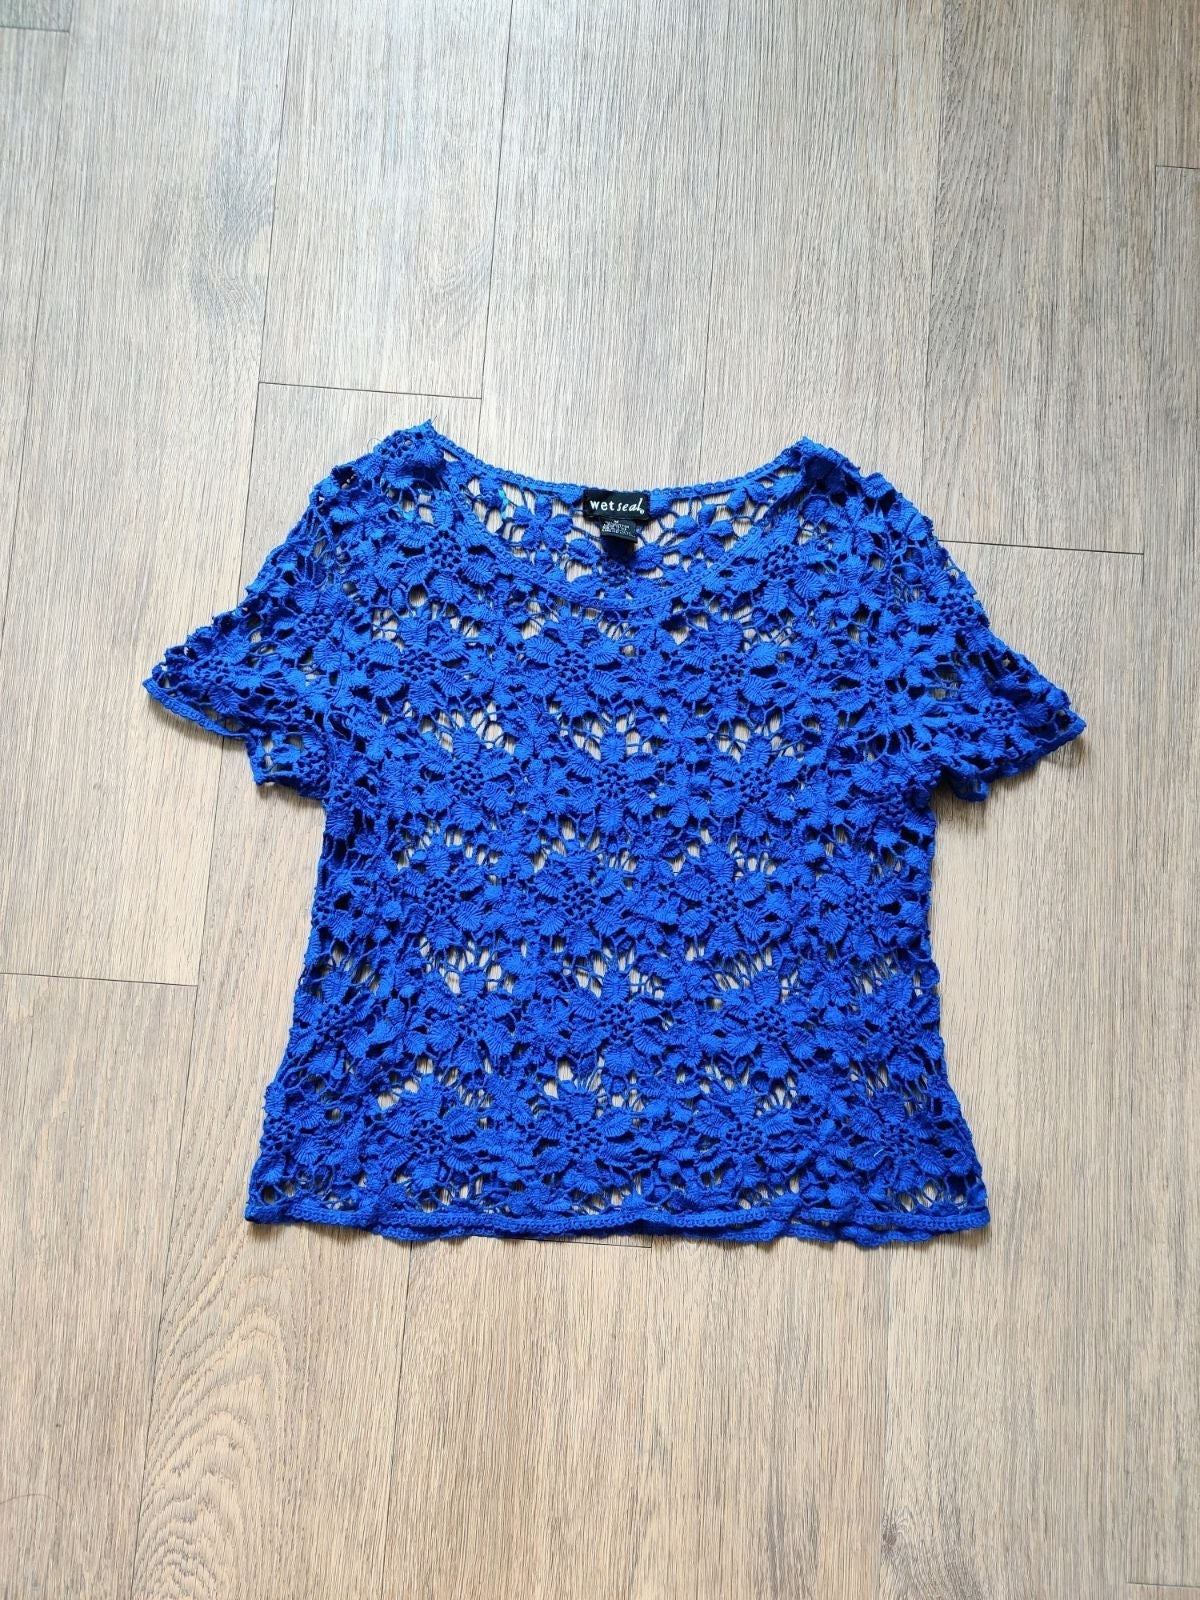 Wet Seal Blue Crochet Top